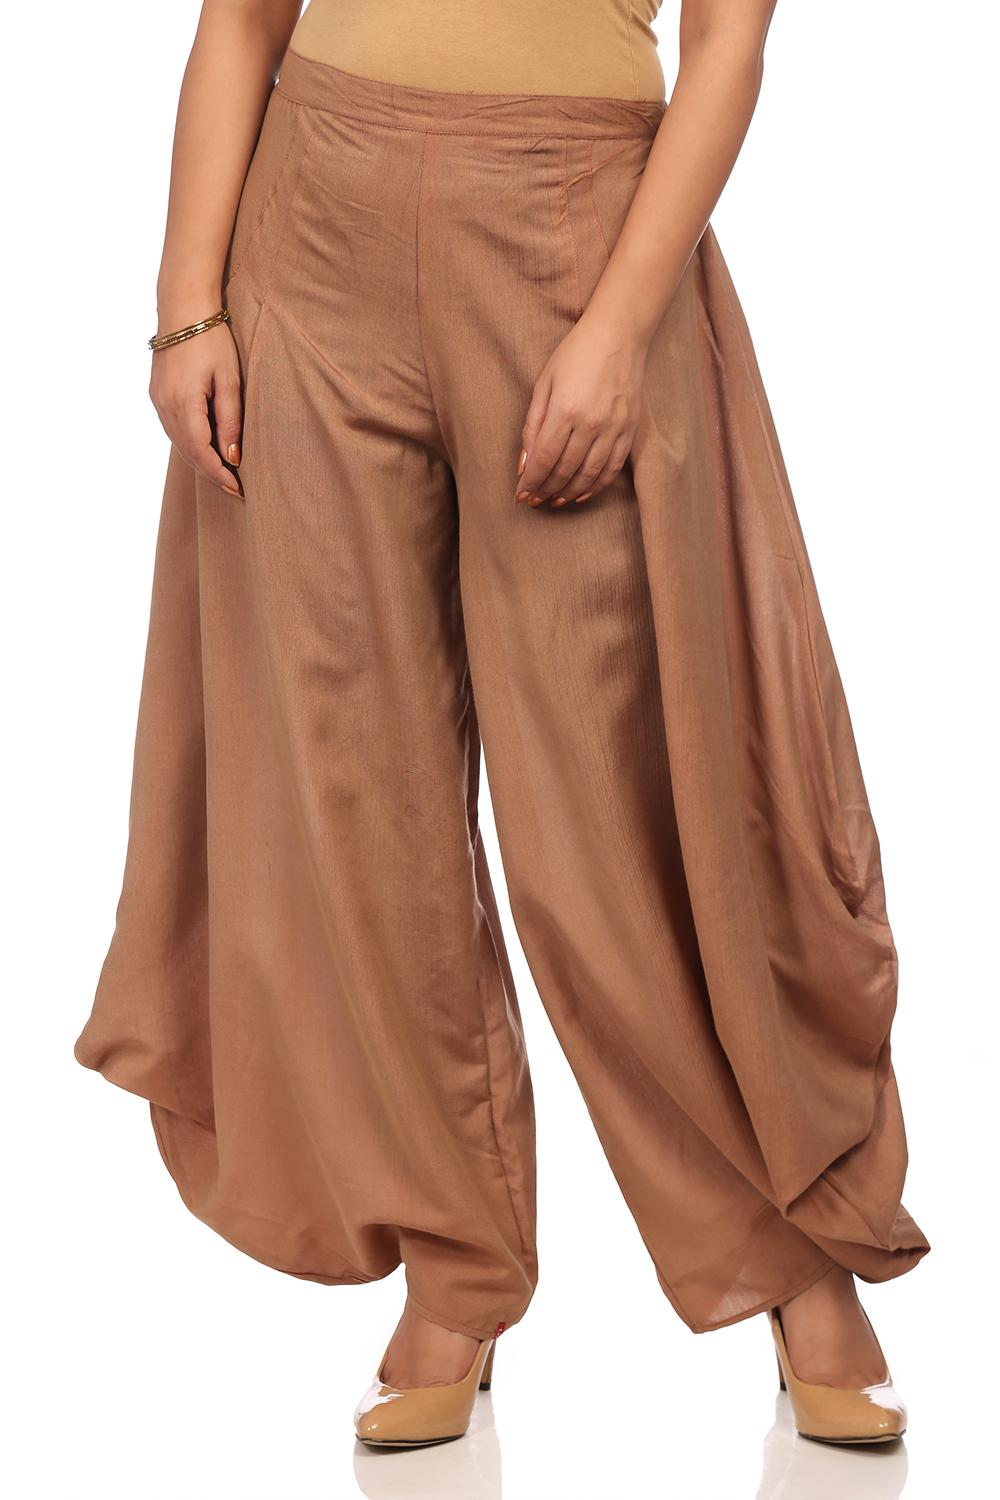 Onion Color Poly Viscose Flared Pants - CORE14481S